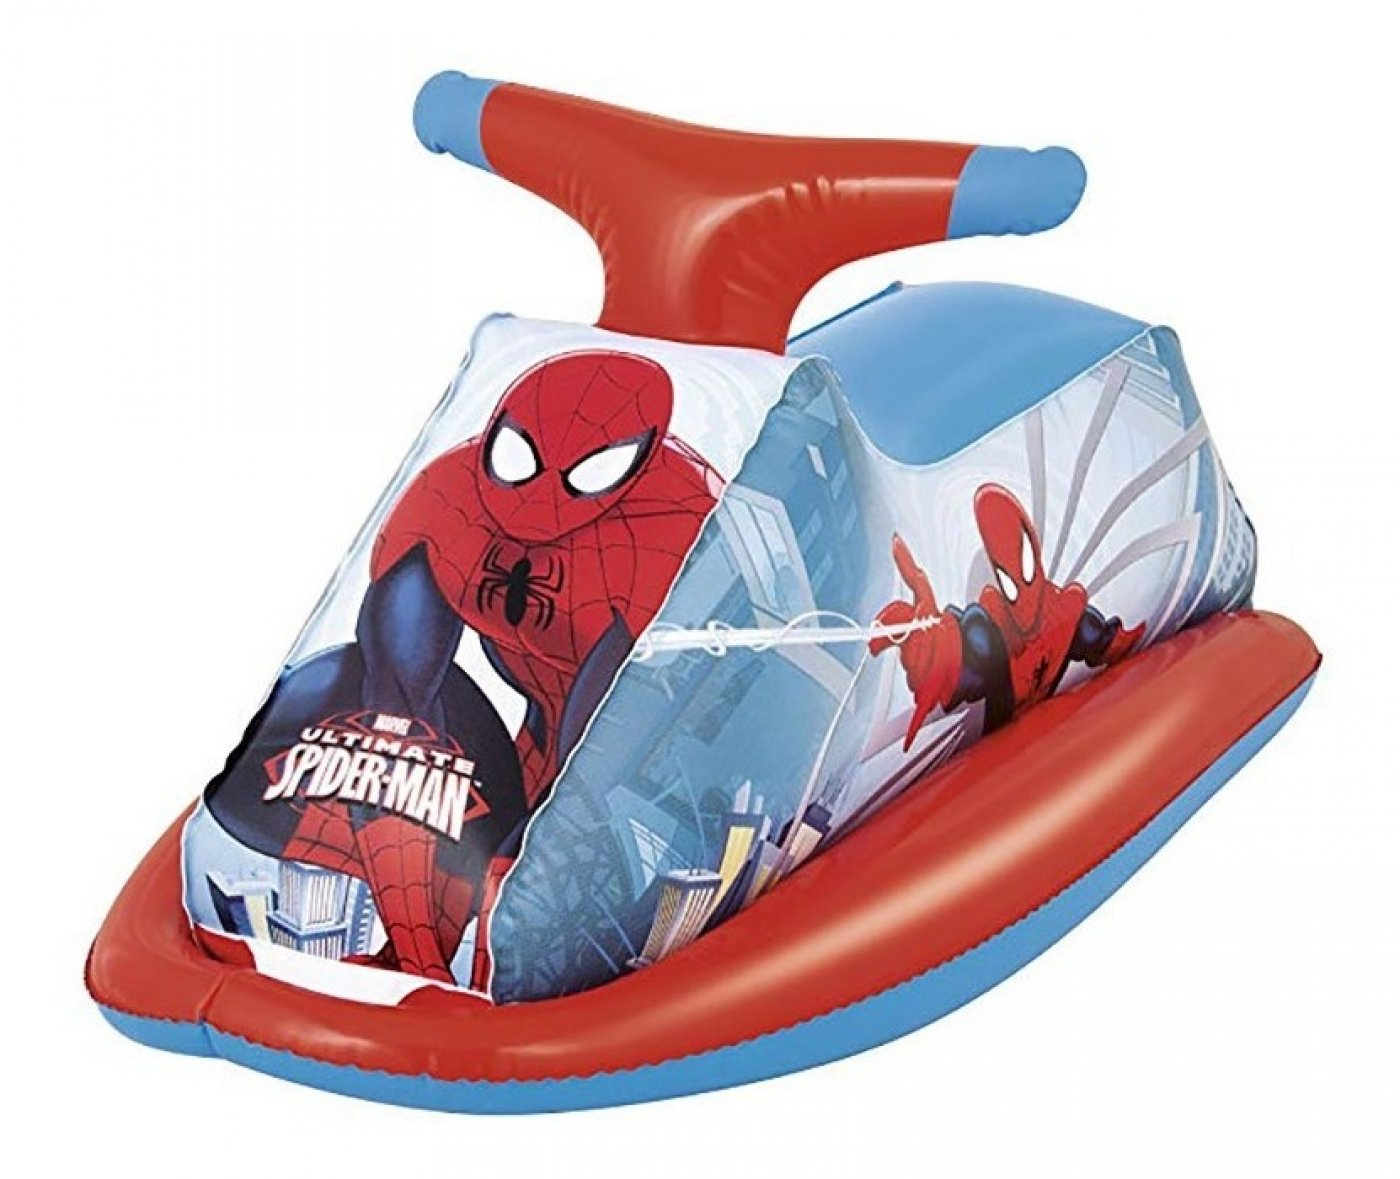 Jetski inflable de Spiderman